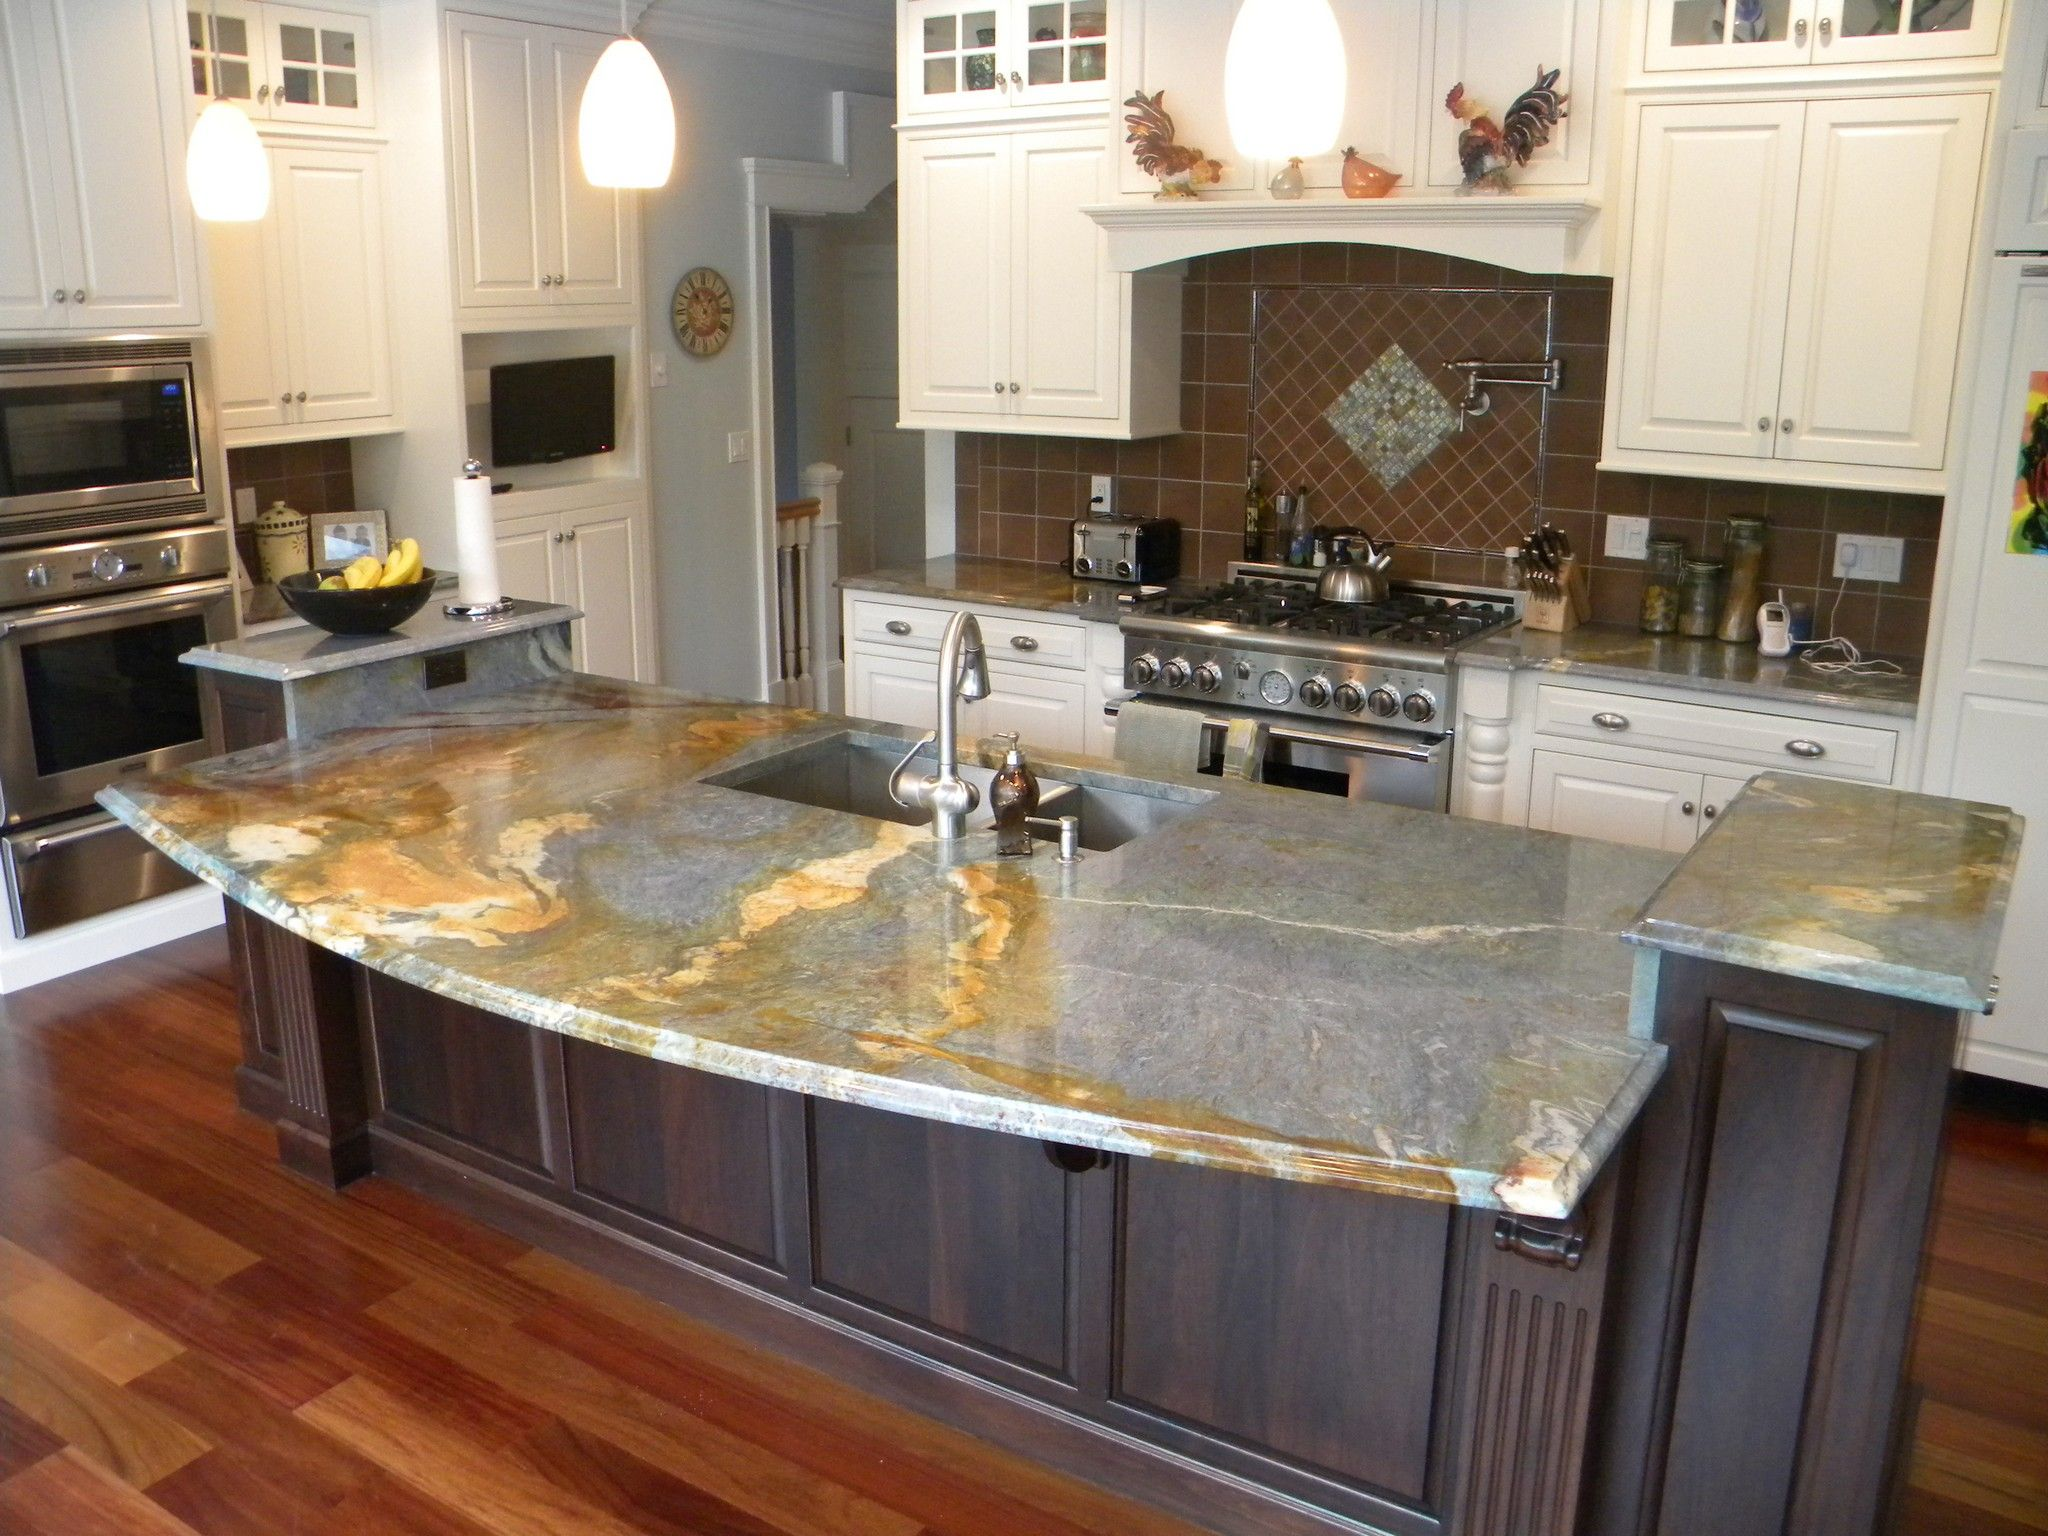 Kitchens With Granite Waterfall Countertop Granite Countertops Marble Countertops